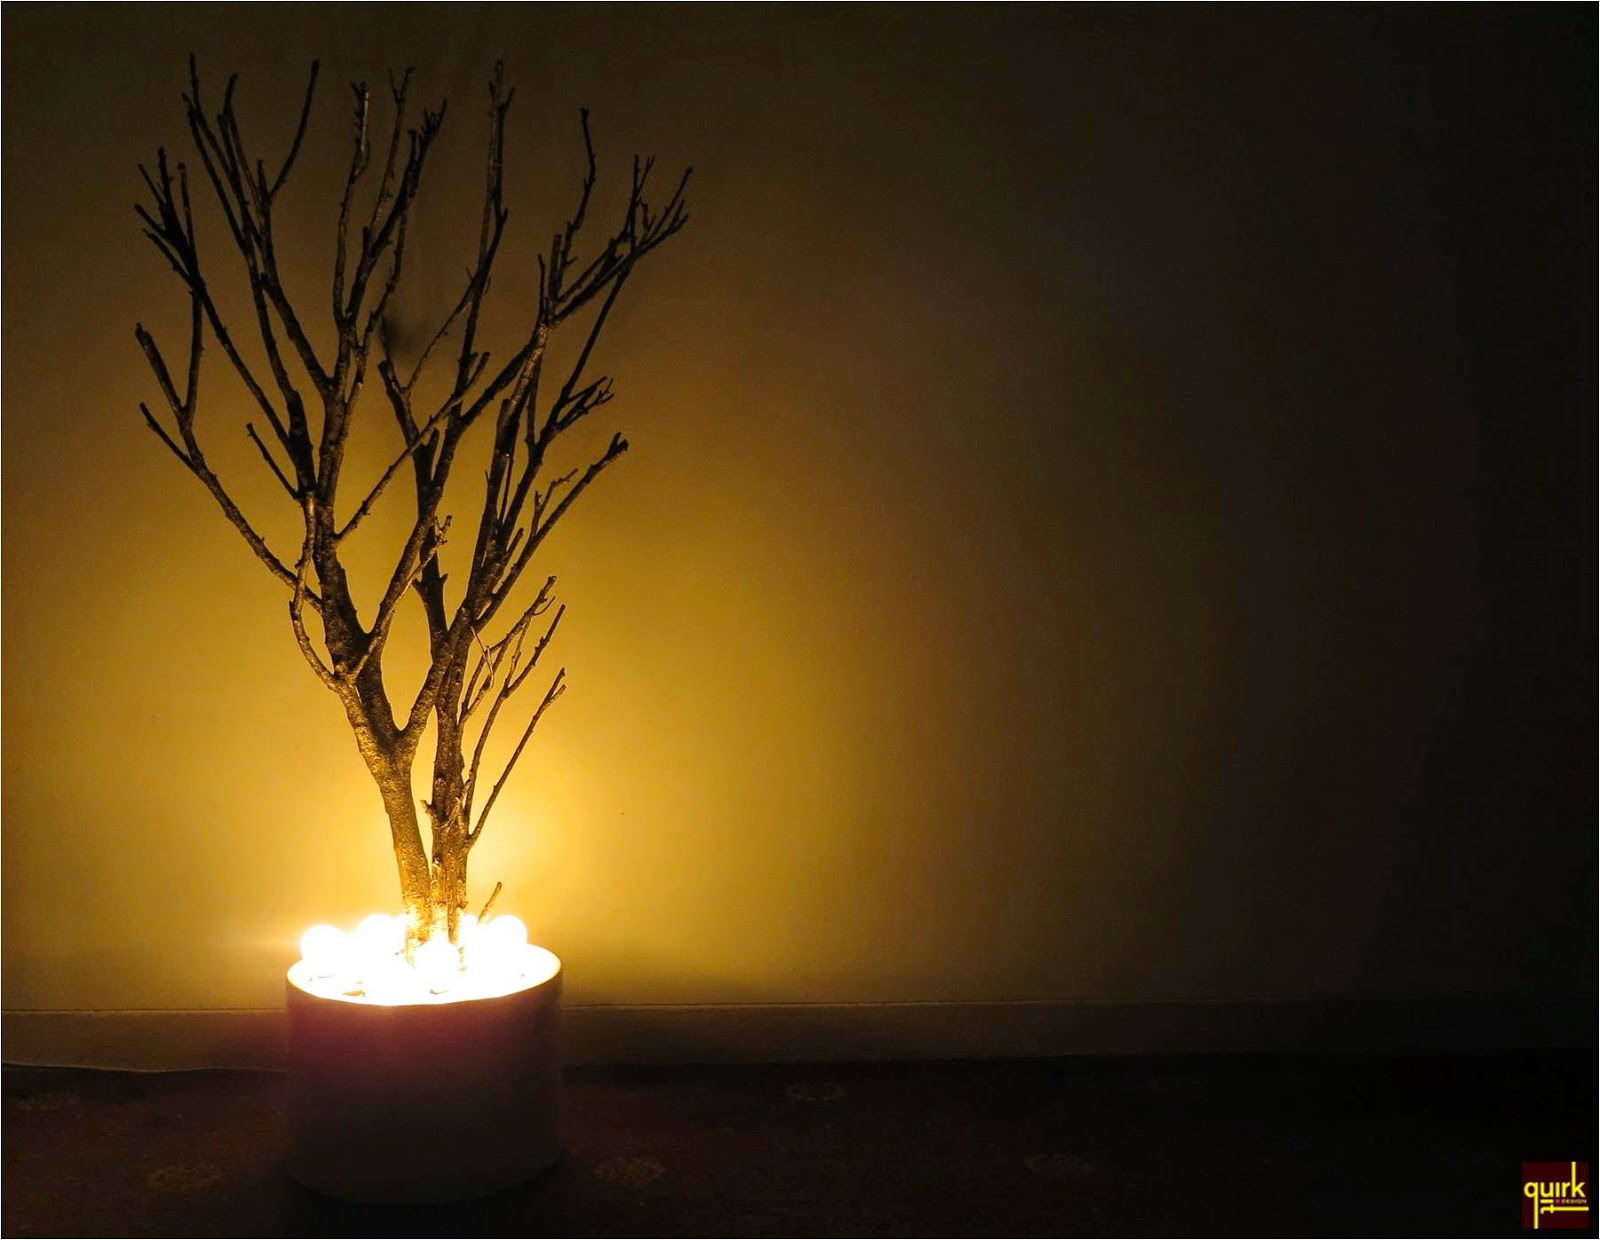 Quirk It Design_Glow Willow from Below__naked branching tree with bulb light glowing below_DIY_Quirky_Home_Decor